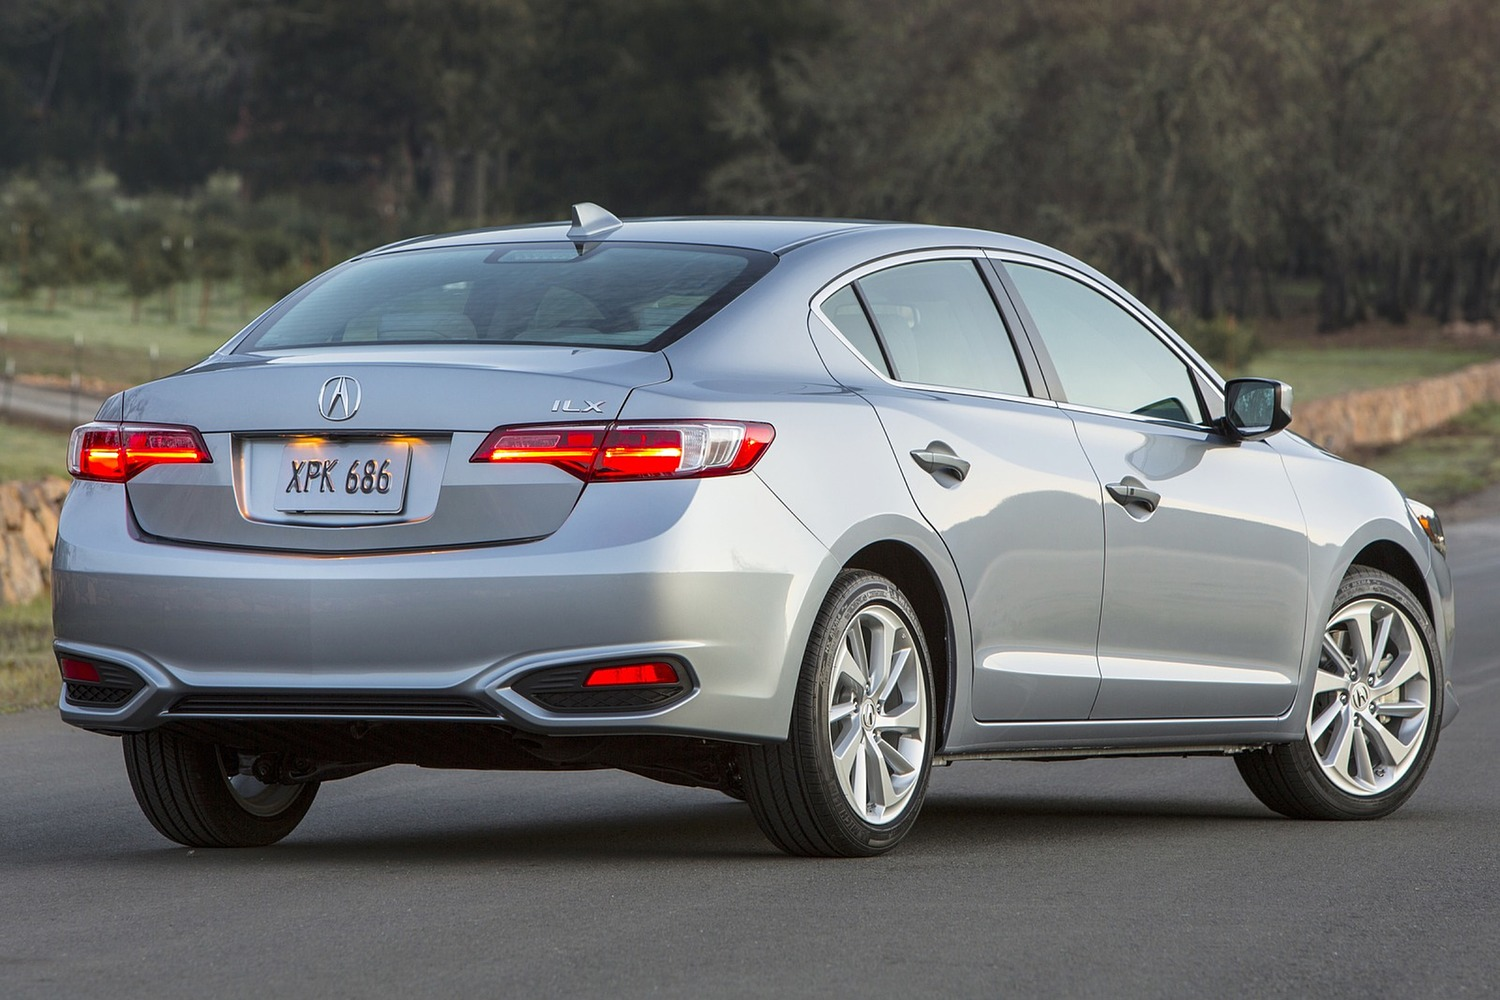 2017 Acura ILX Technology Plus Package Sedan Exterior Shown